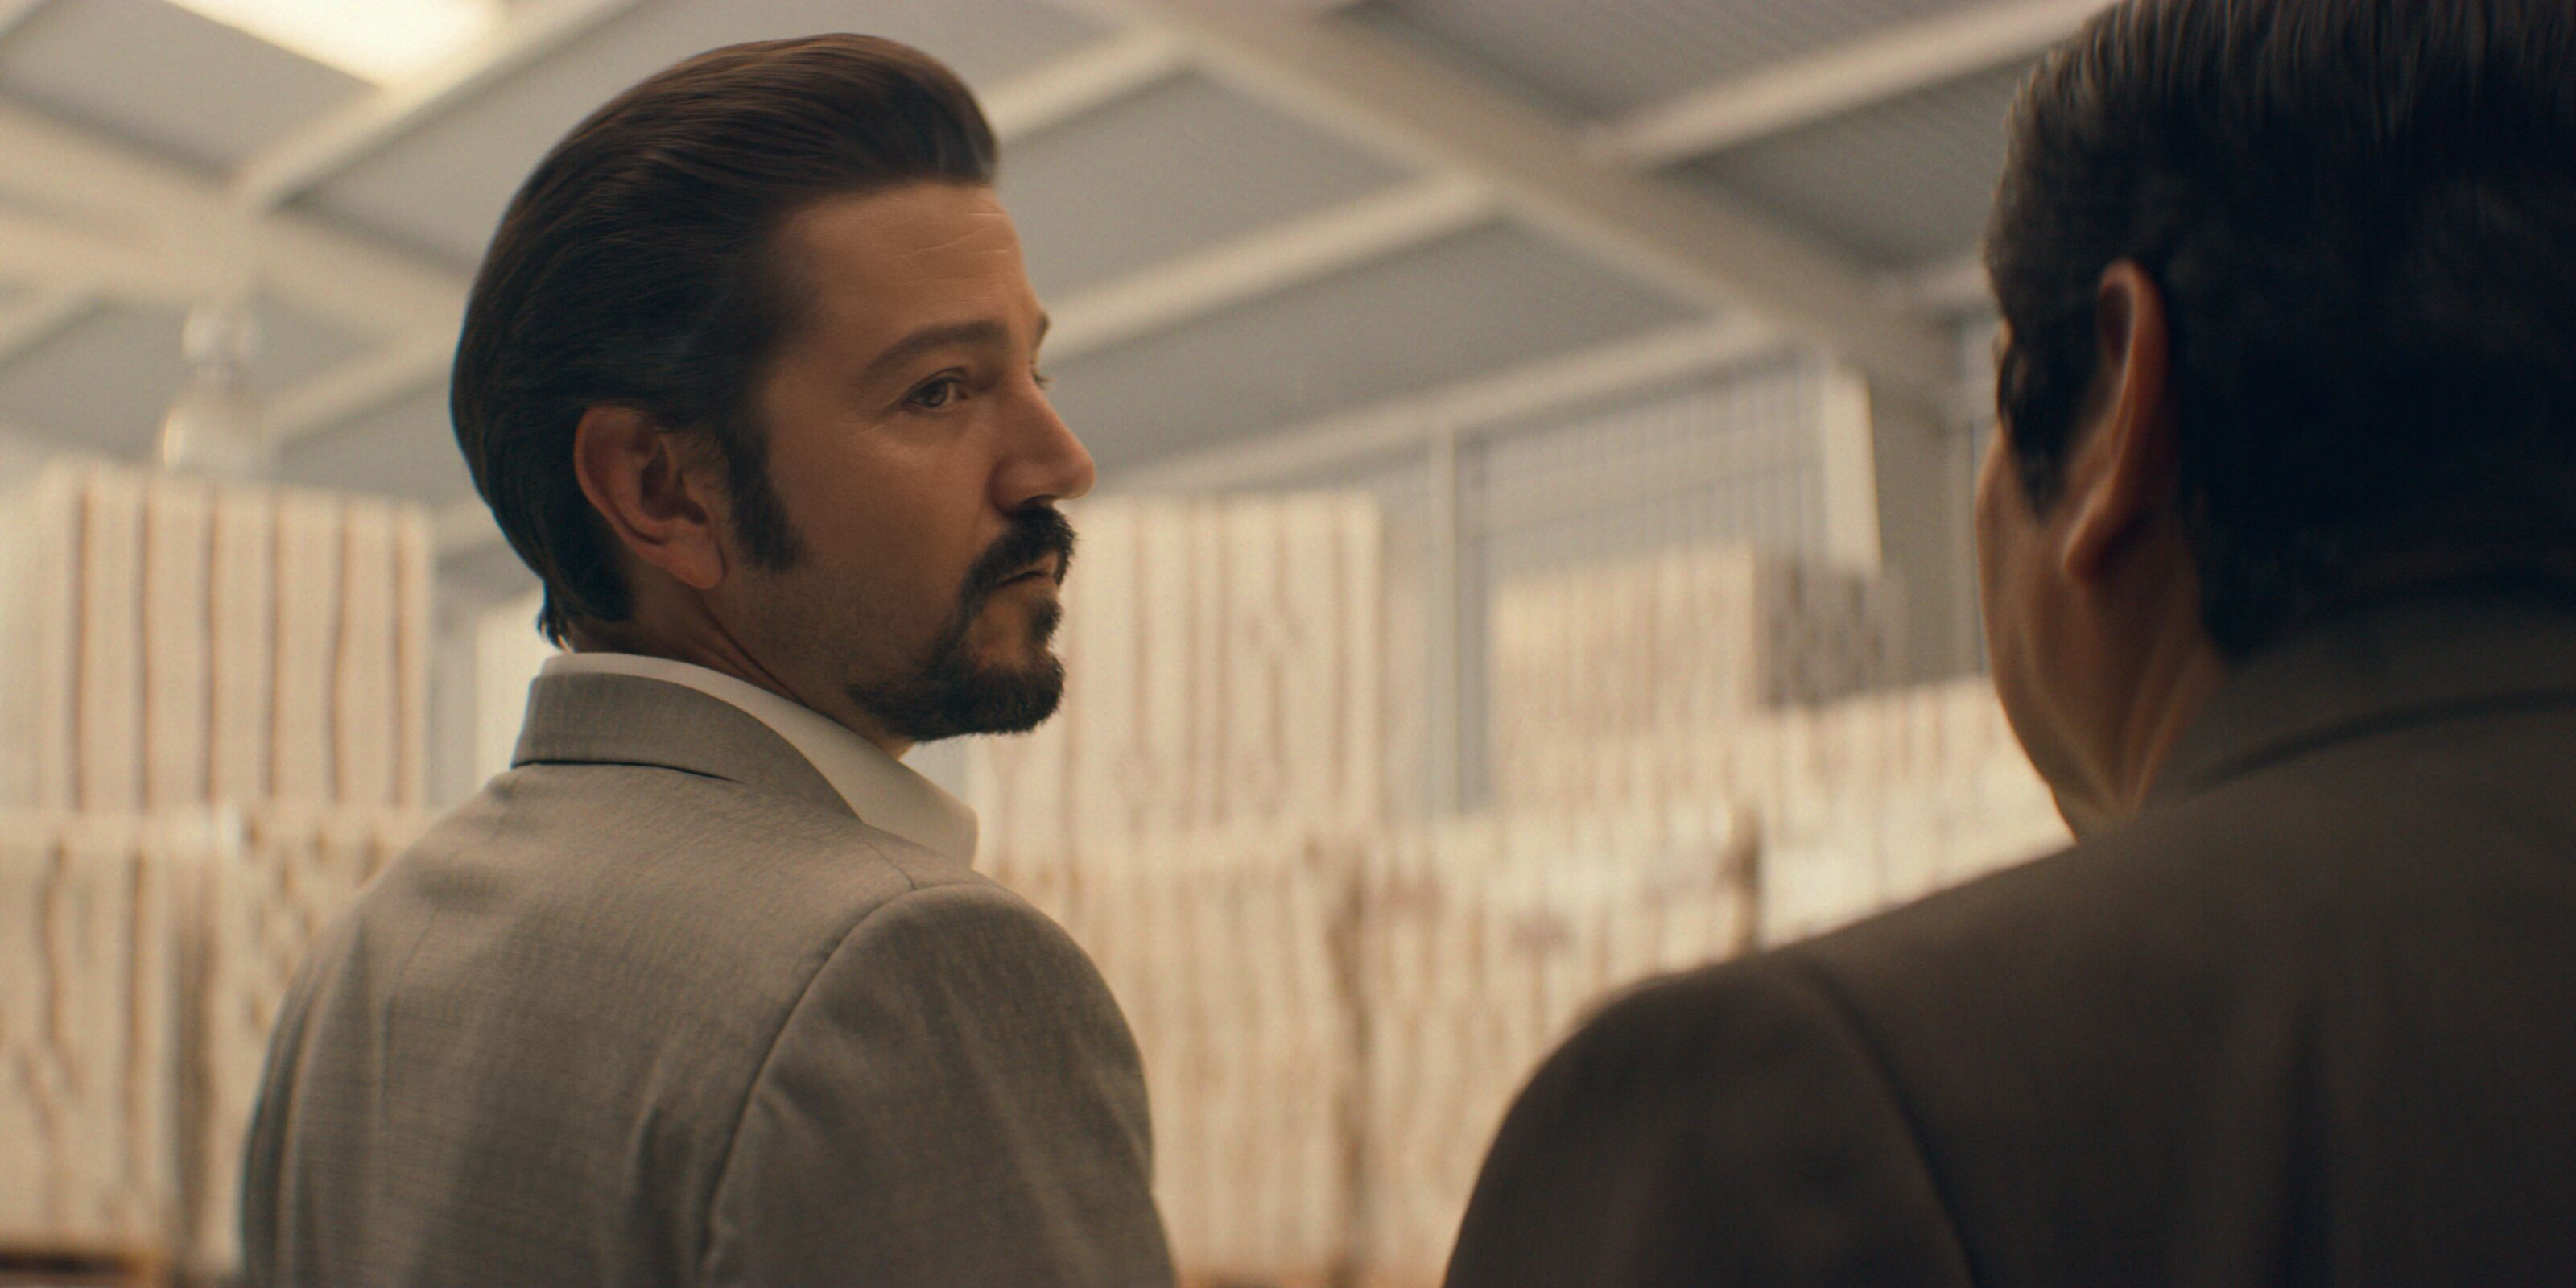 Narcos: Mexico season 2 review: The series has lost its touch